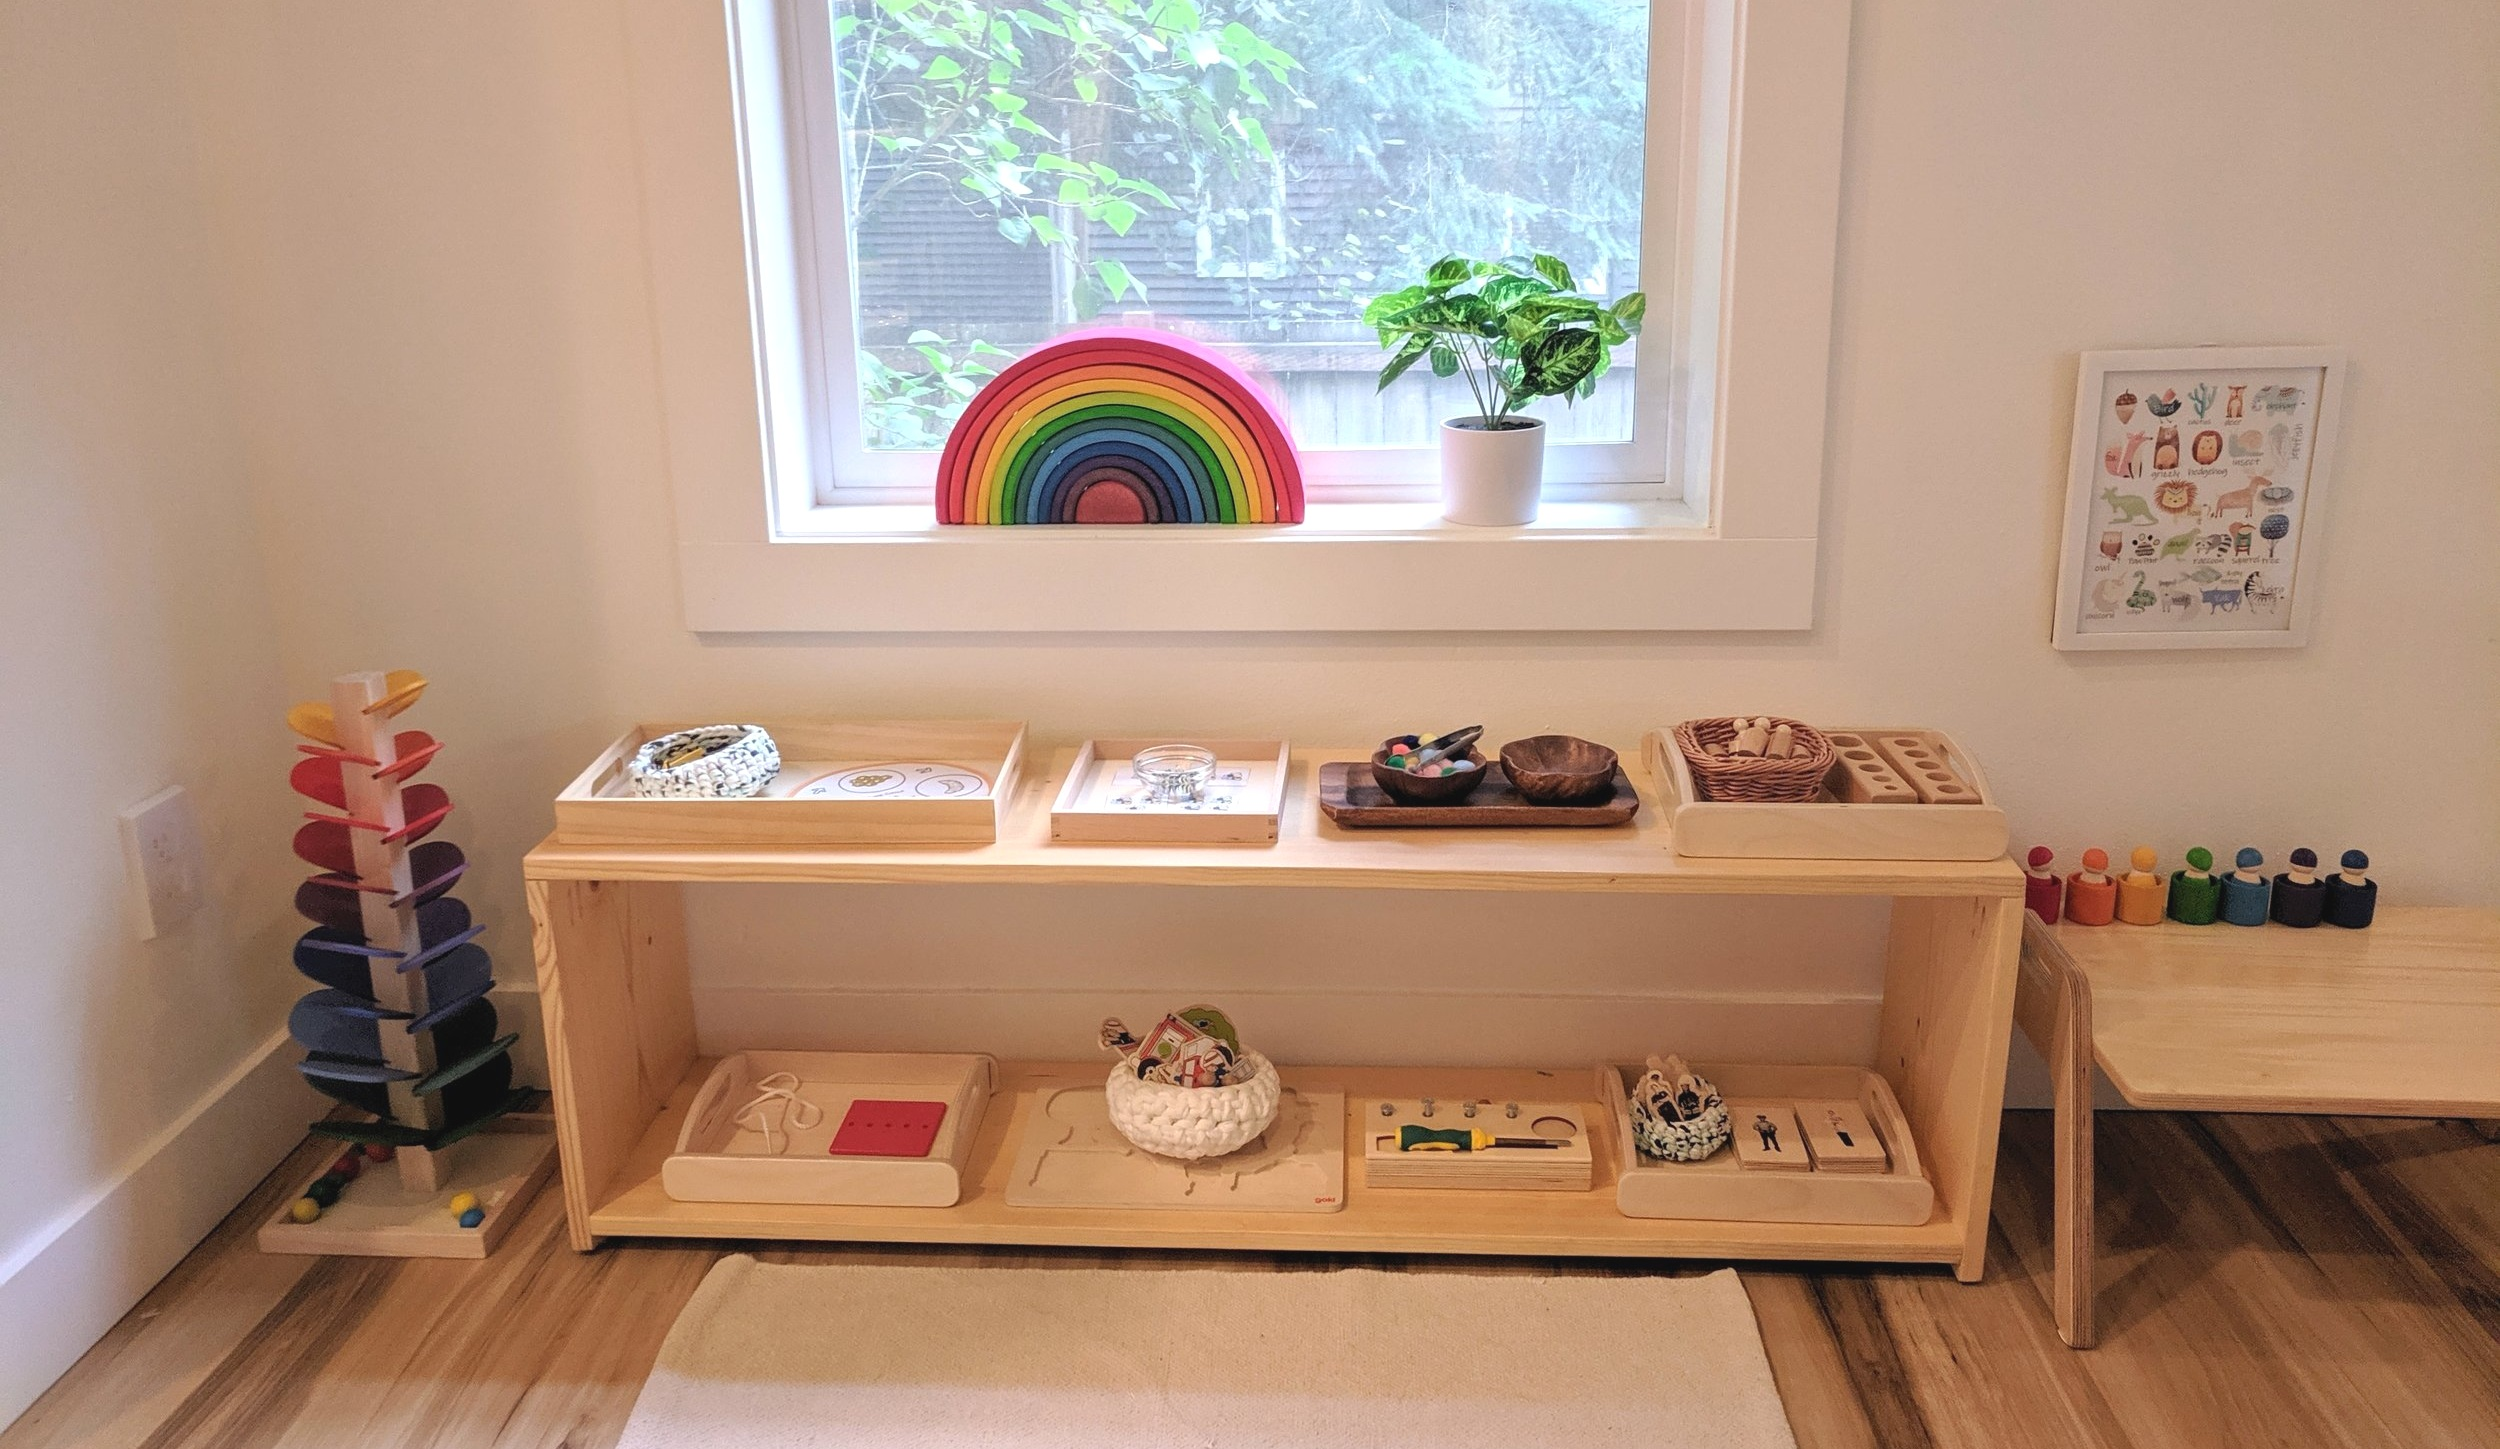 D's Shelfie at 26 Months - Montessori in Real Life